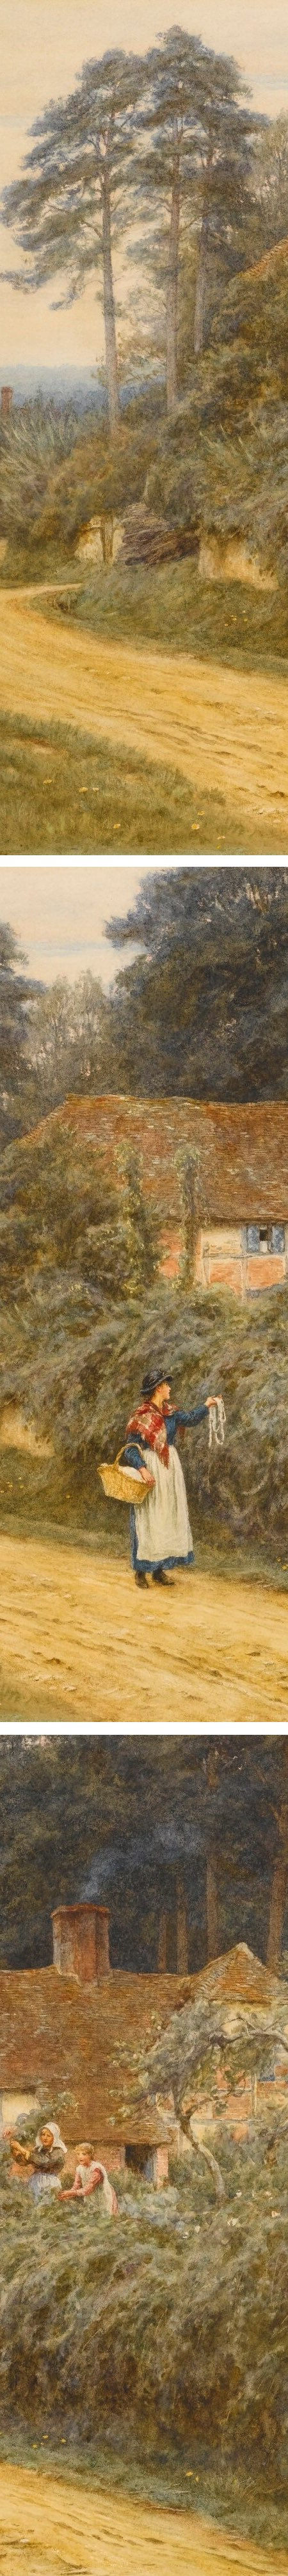 The Basket Woman, Hellen Allingham (details0